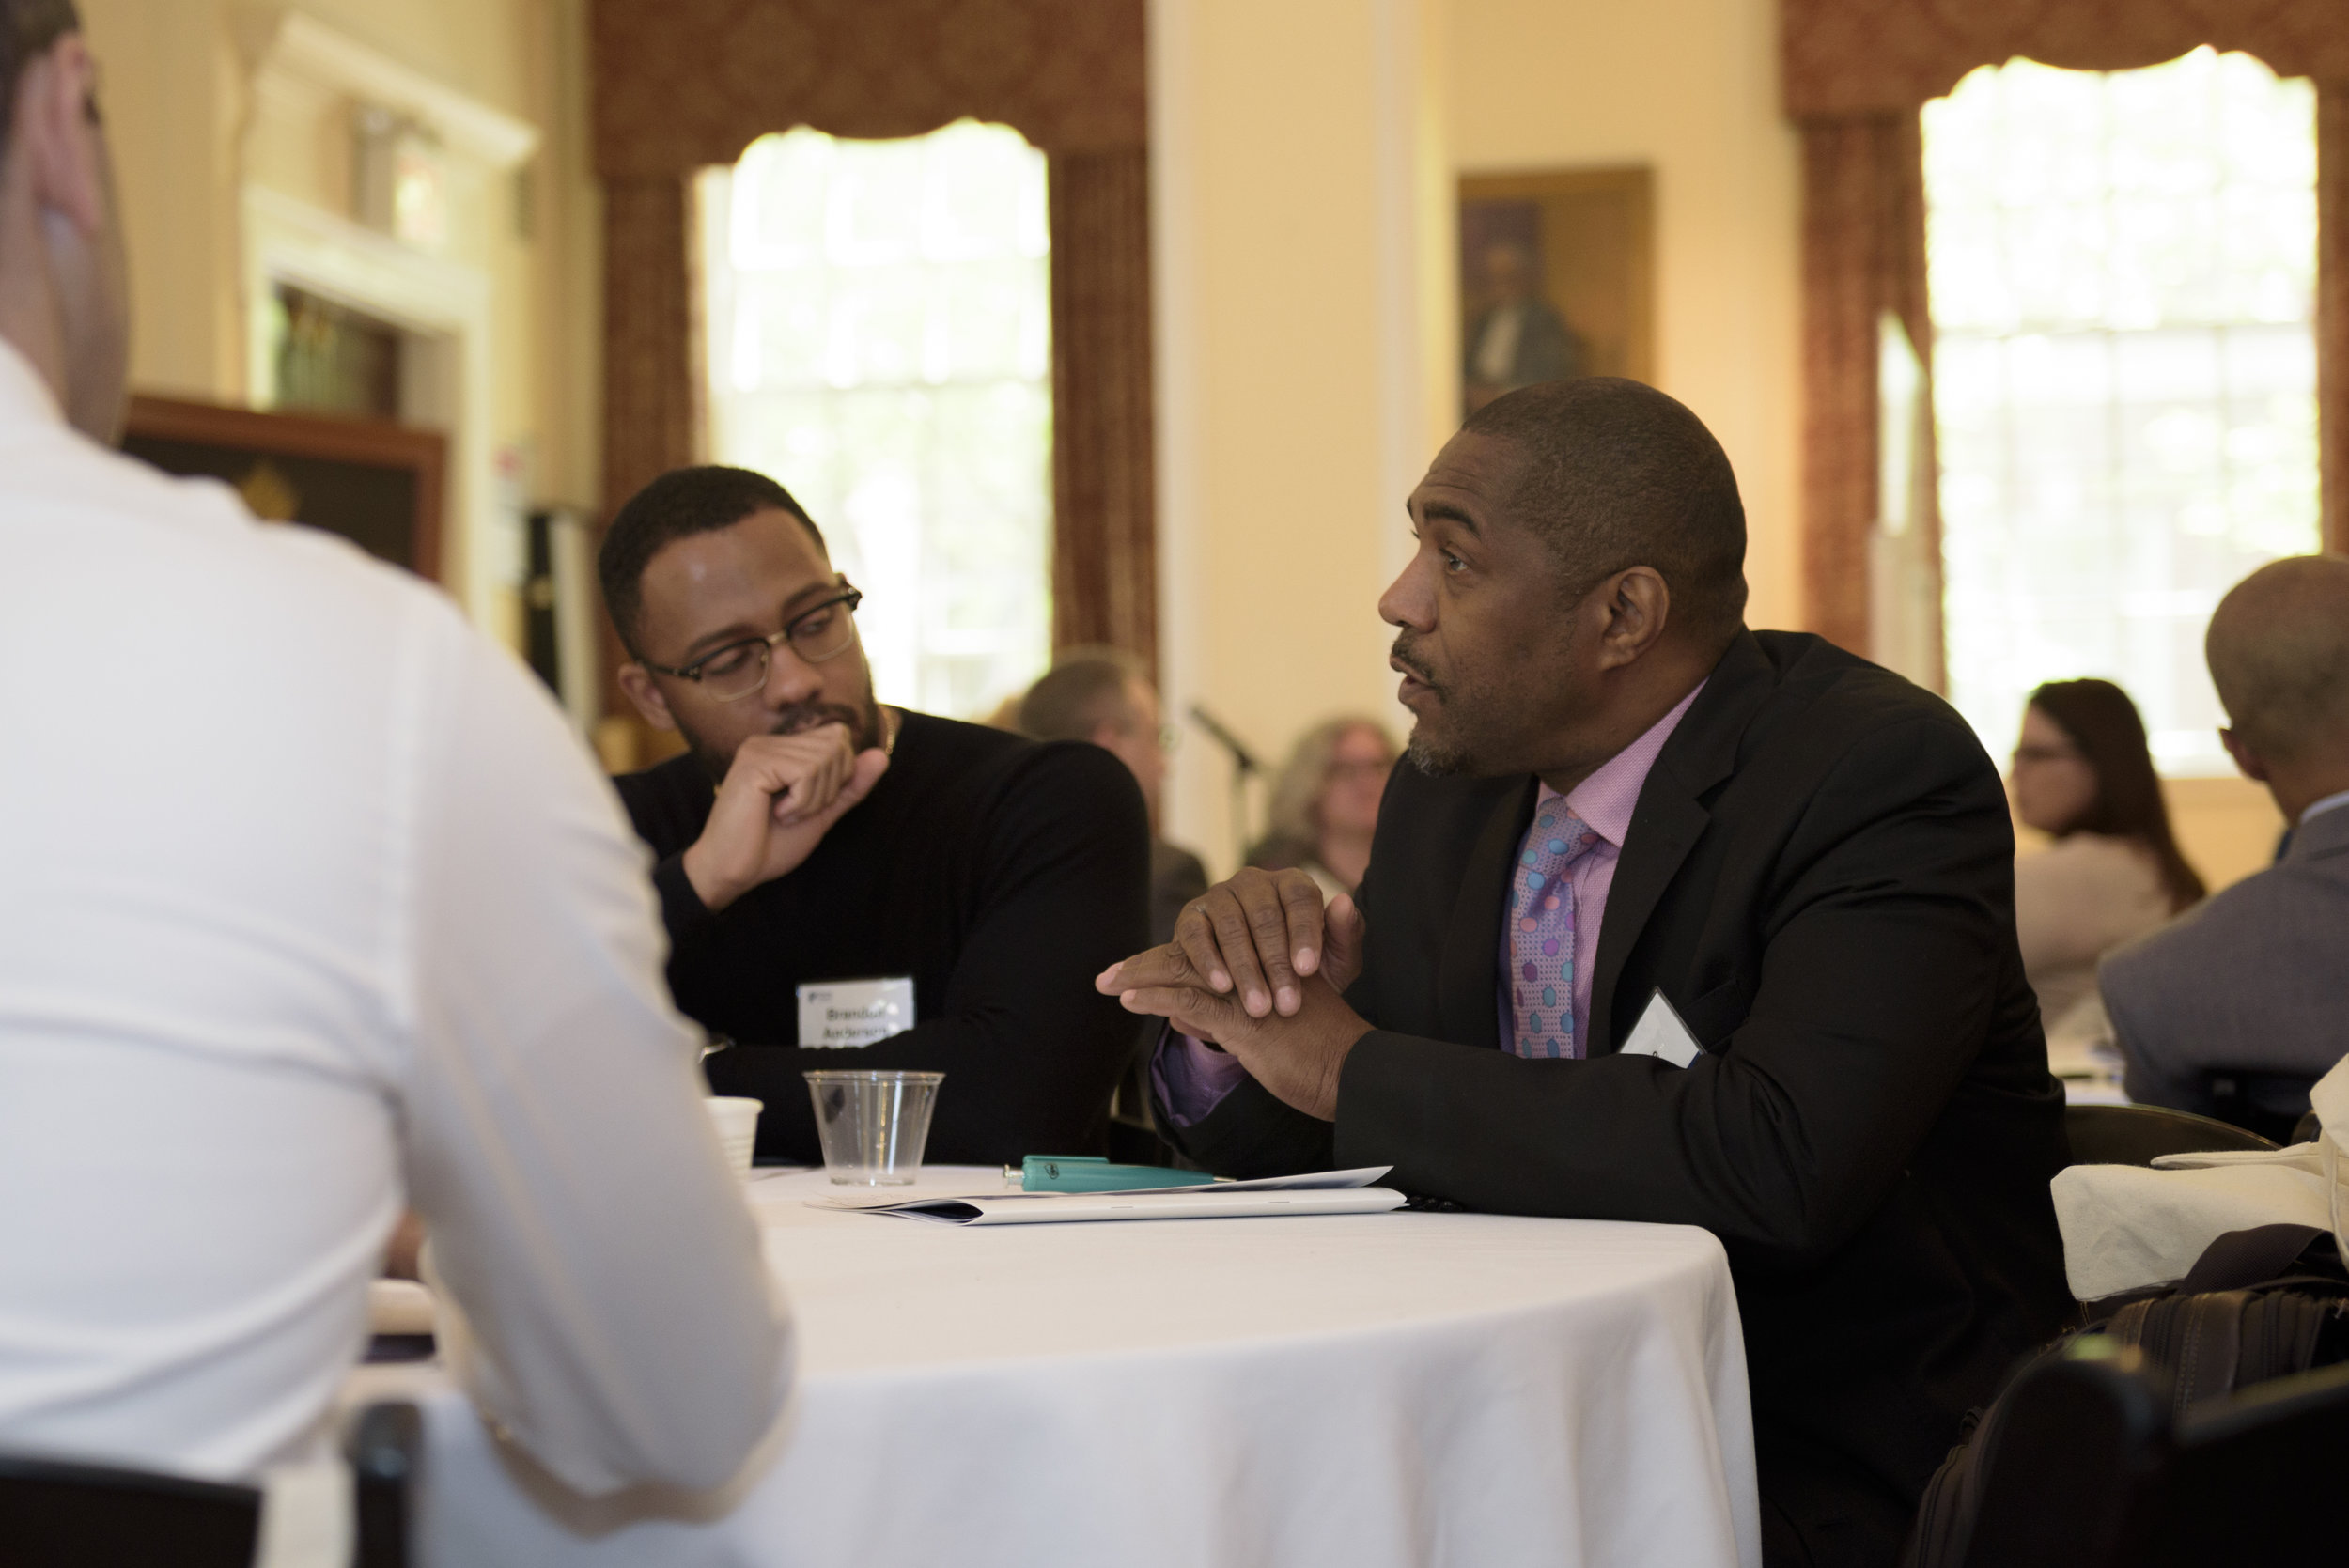 Divine Pryor, executive director of Center for Nuleadership on Urban Solutions, with Brandon Anderson, founder of Raheem AI.